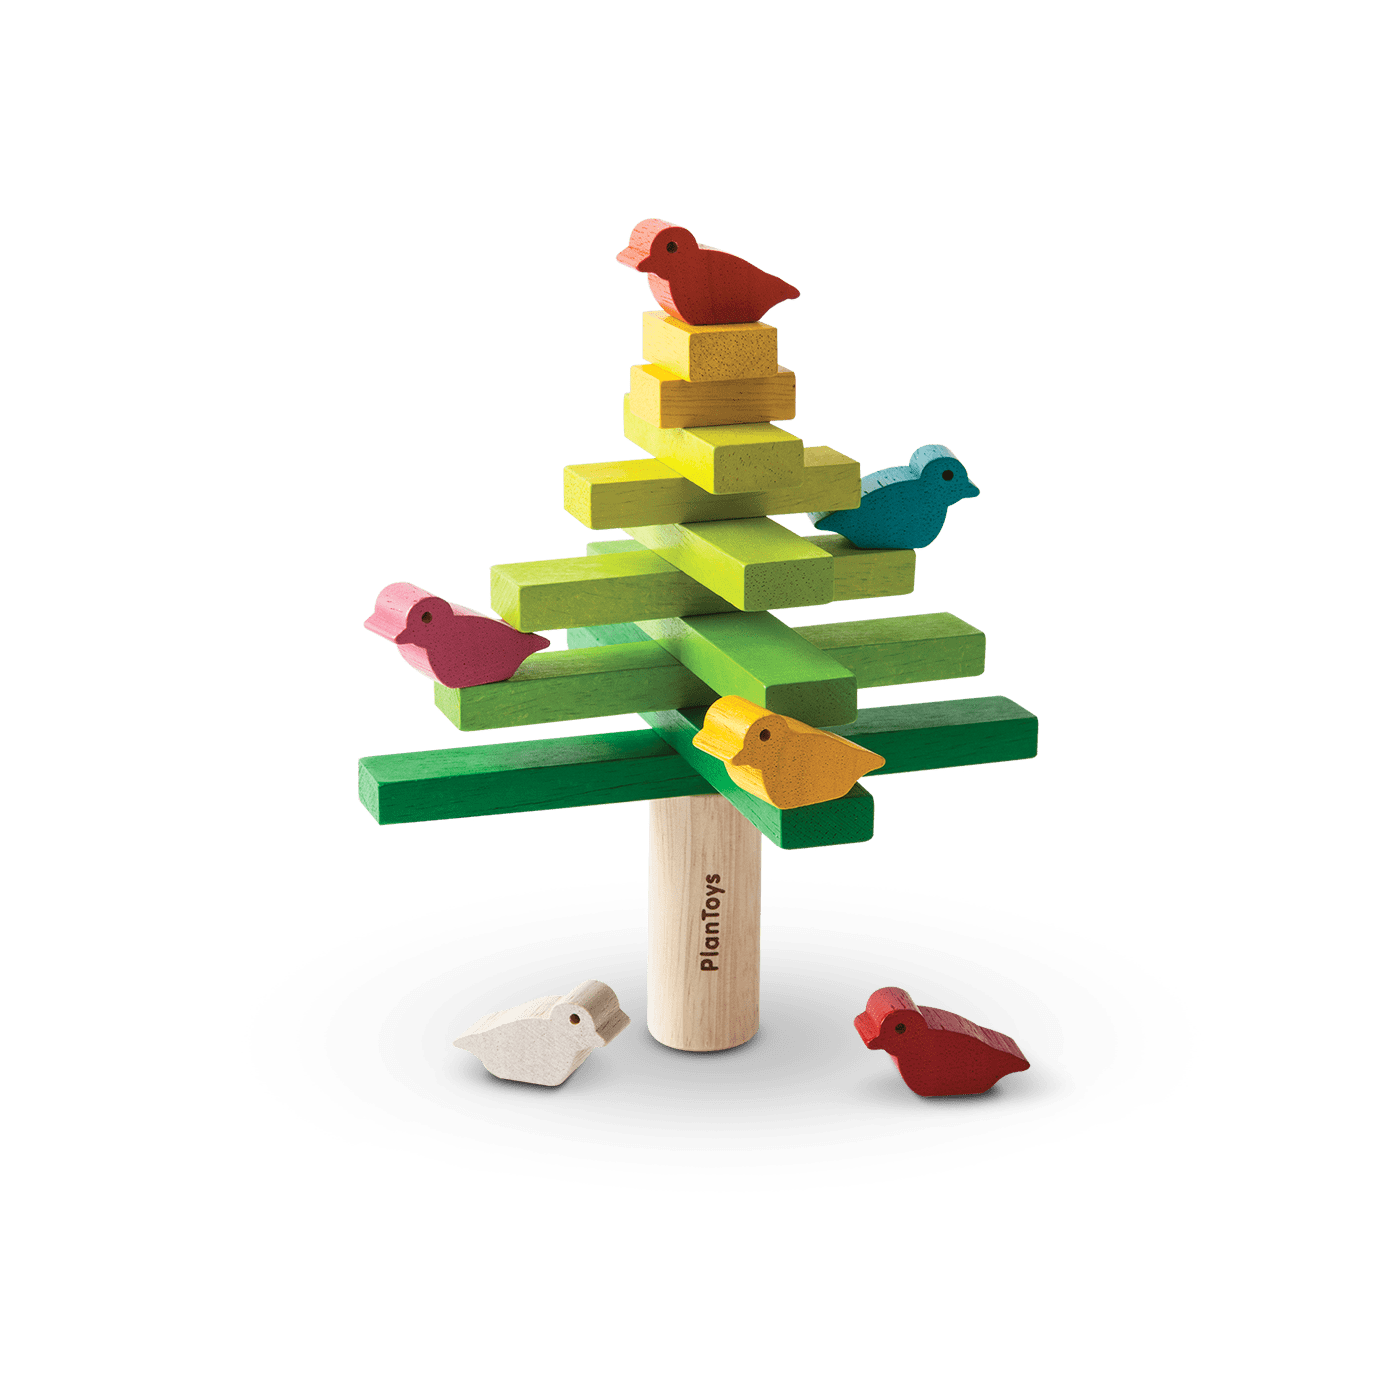 5140_PlanToys_BALANCING_TREE_Game_and_Puzzles_Fine_Motor_Social_Concentration_Coordination_3yrs_Wooden_toys_Education_toys_Safety_Toys_Non-toxic_0.png